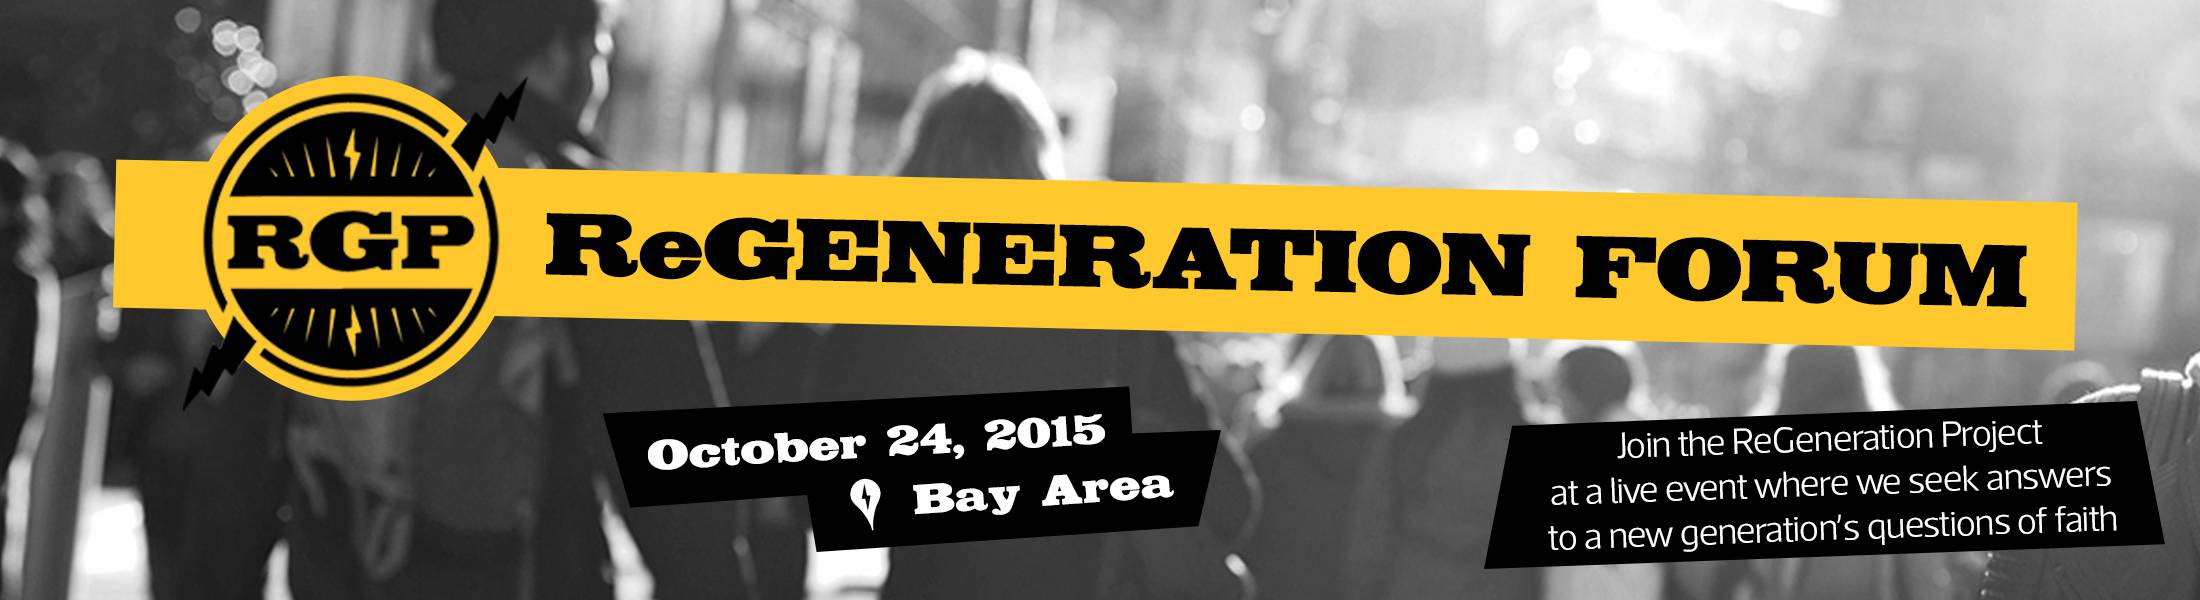 ReGeneration Forum 2015 - San Jose